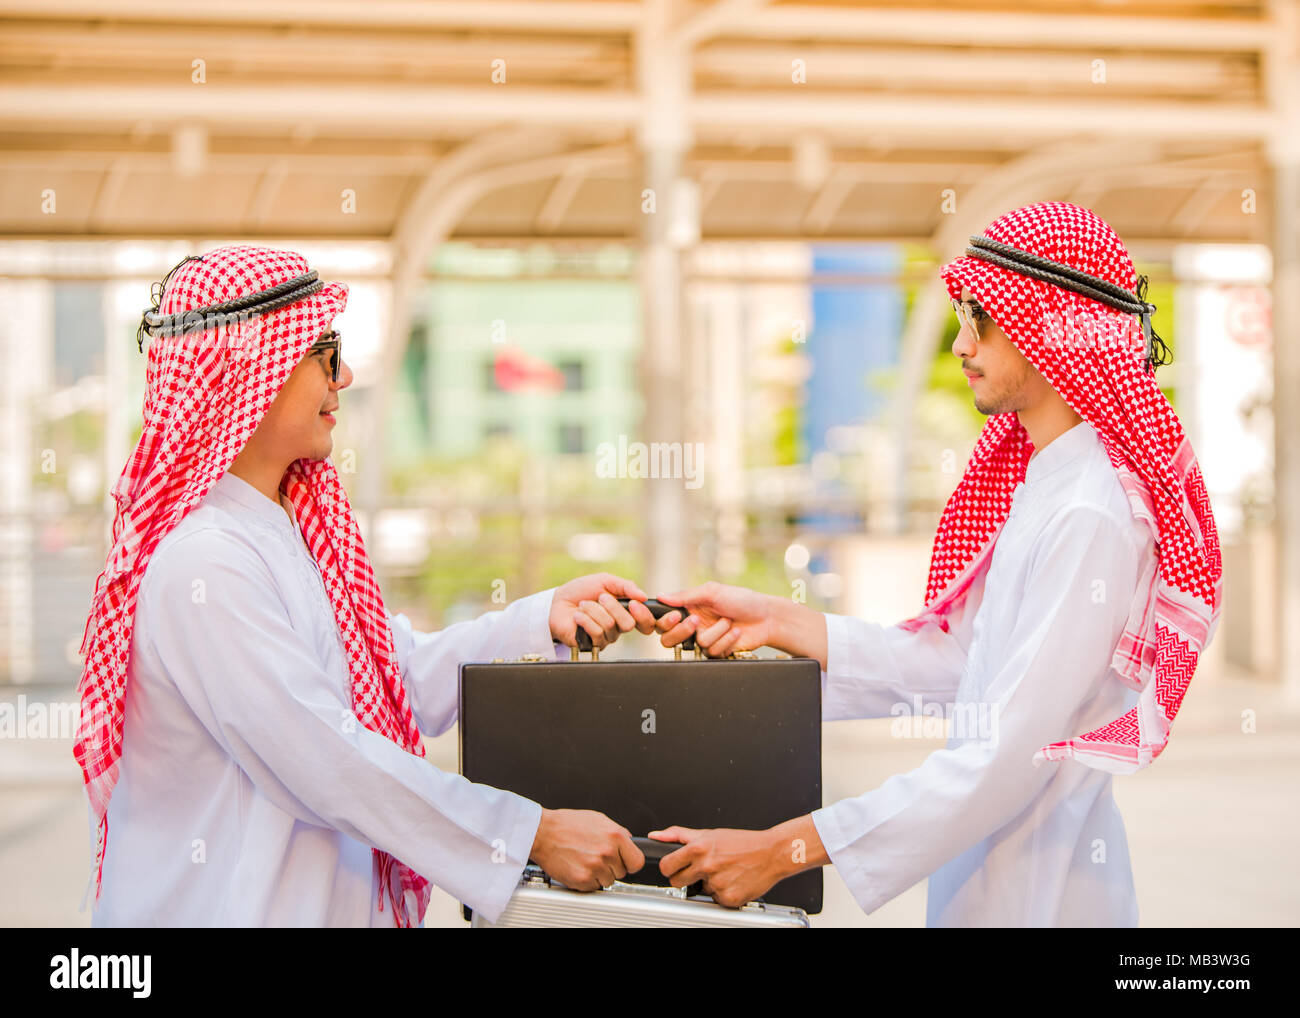 Successful Arabic business people shaking hands exchange bag over a deal - Stock Image